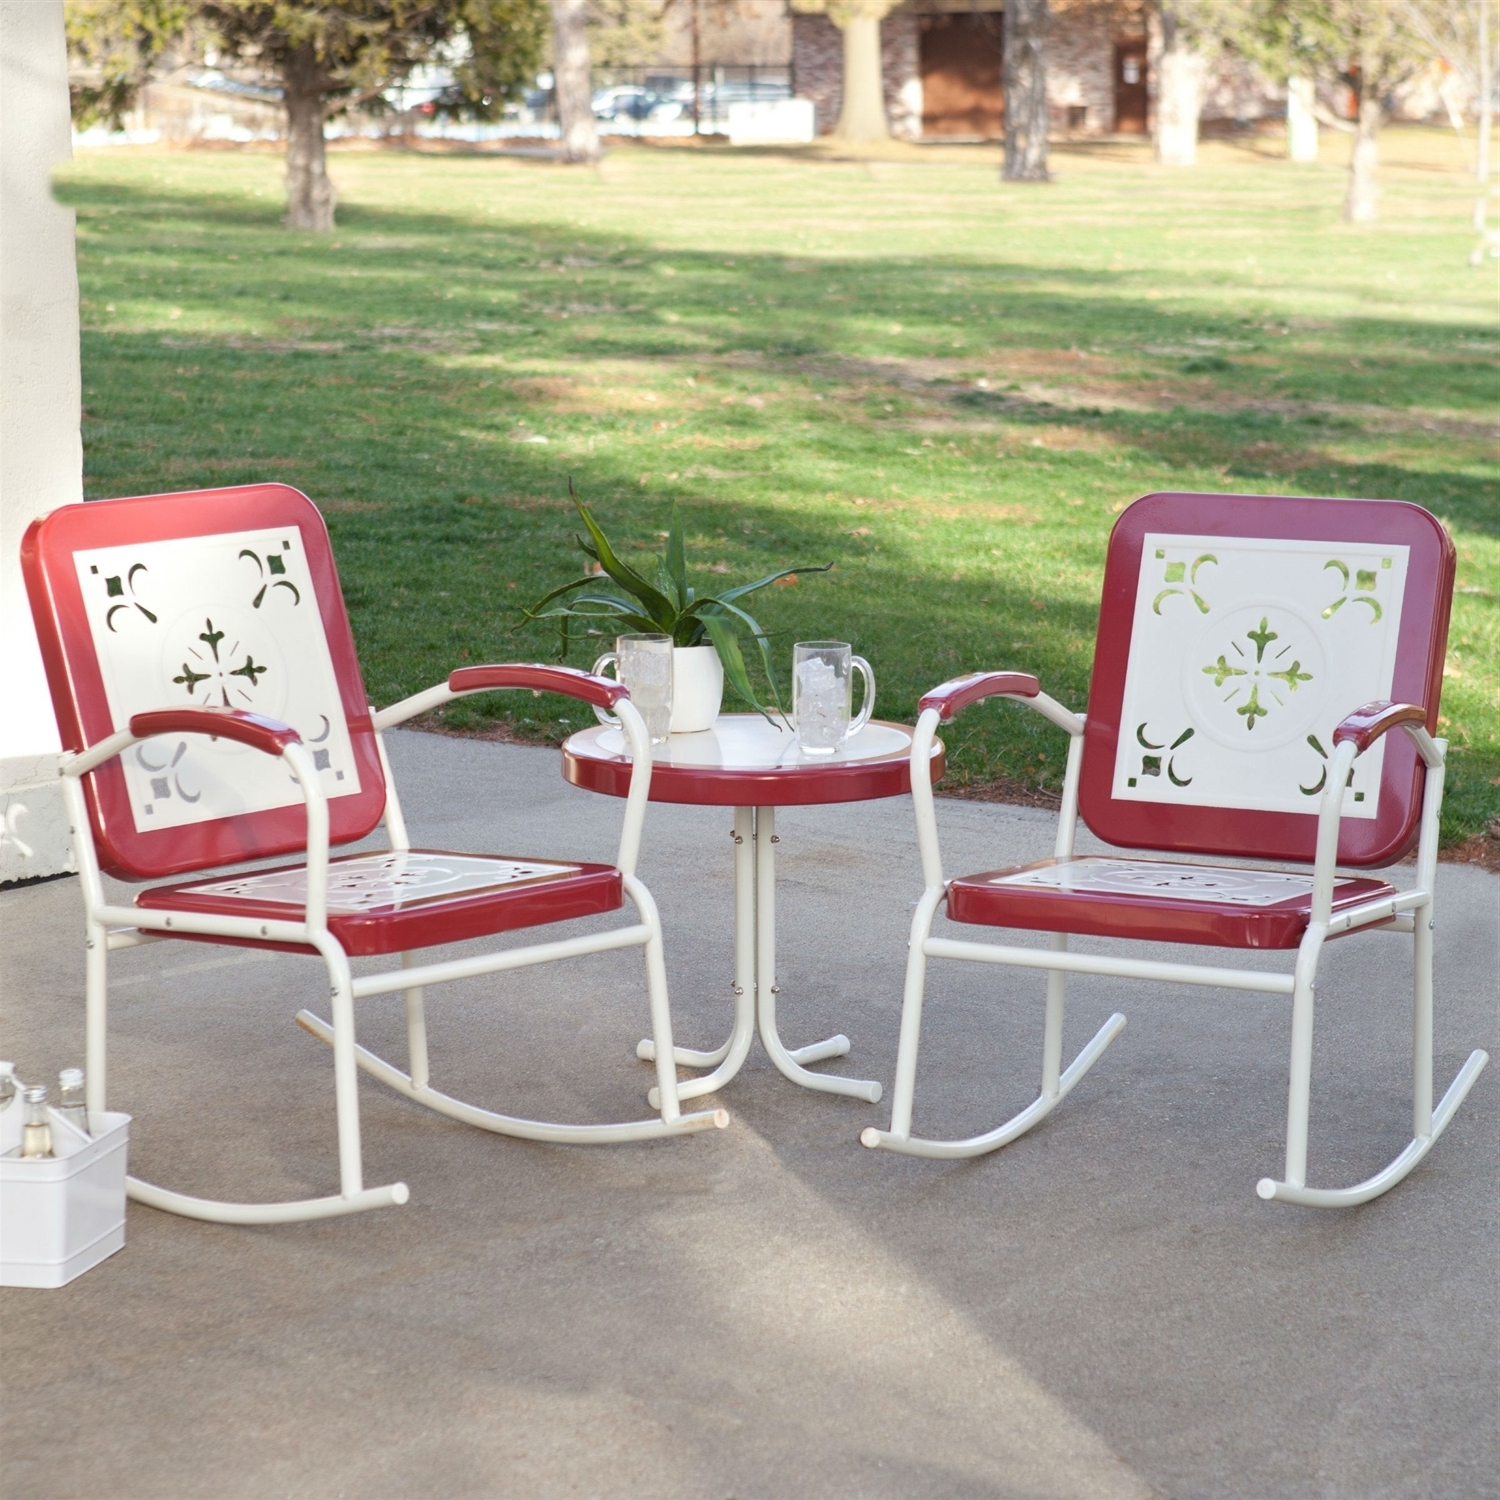 Widely Used Outside Rocking Chair Sets Pertaining To Cherry Red Retro Patio Pc Metal Rocker Rocking Chair Set Aluminum (View 20 of 20)